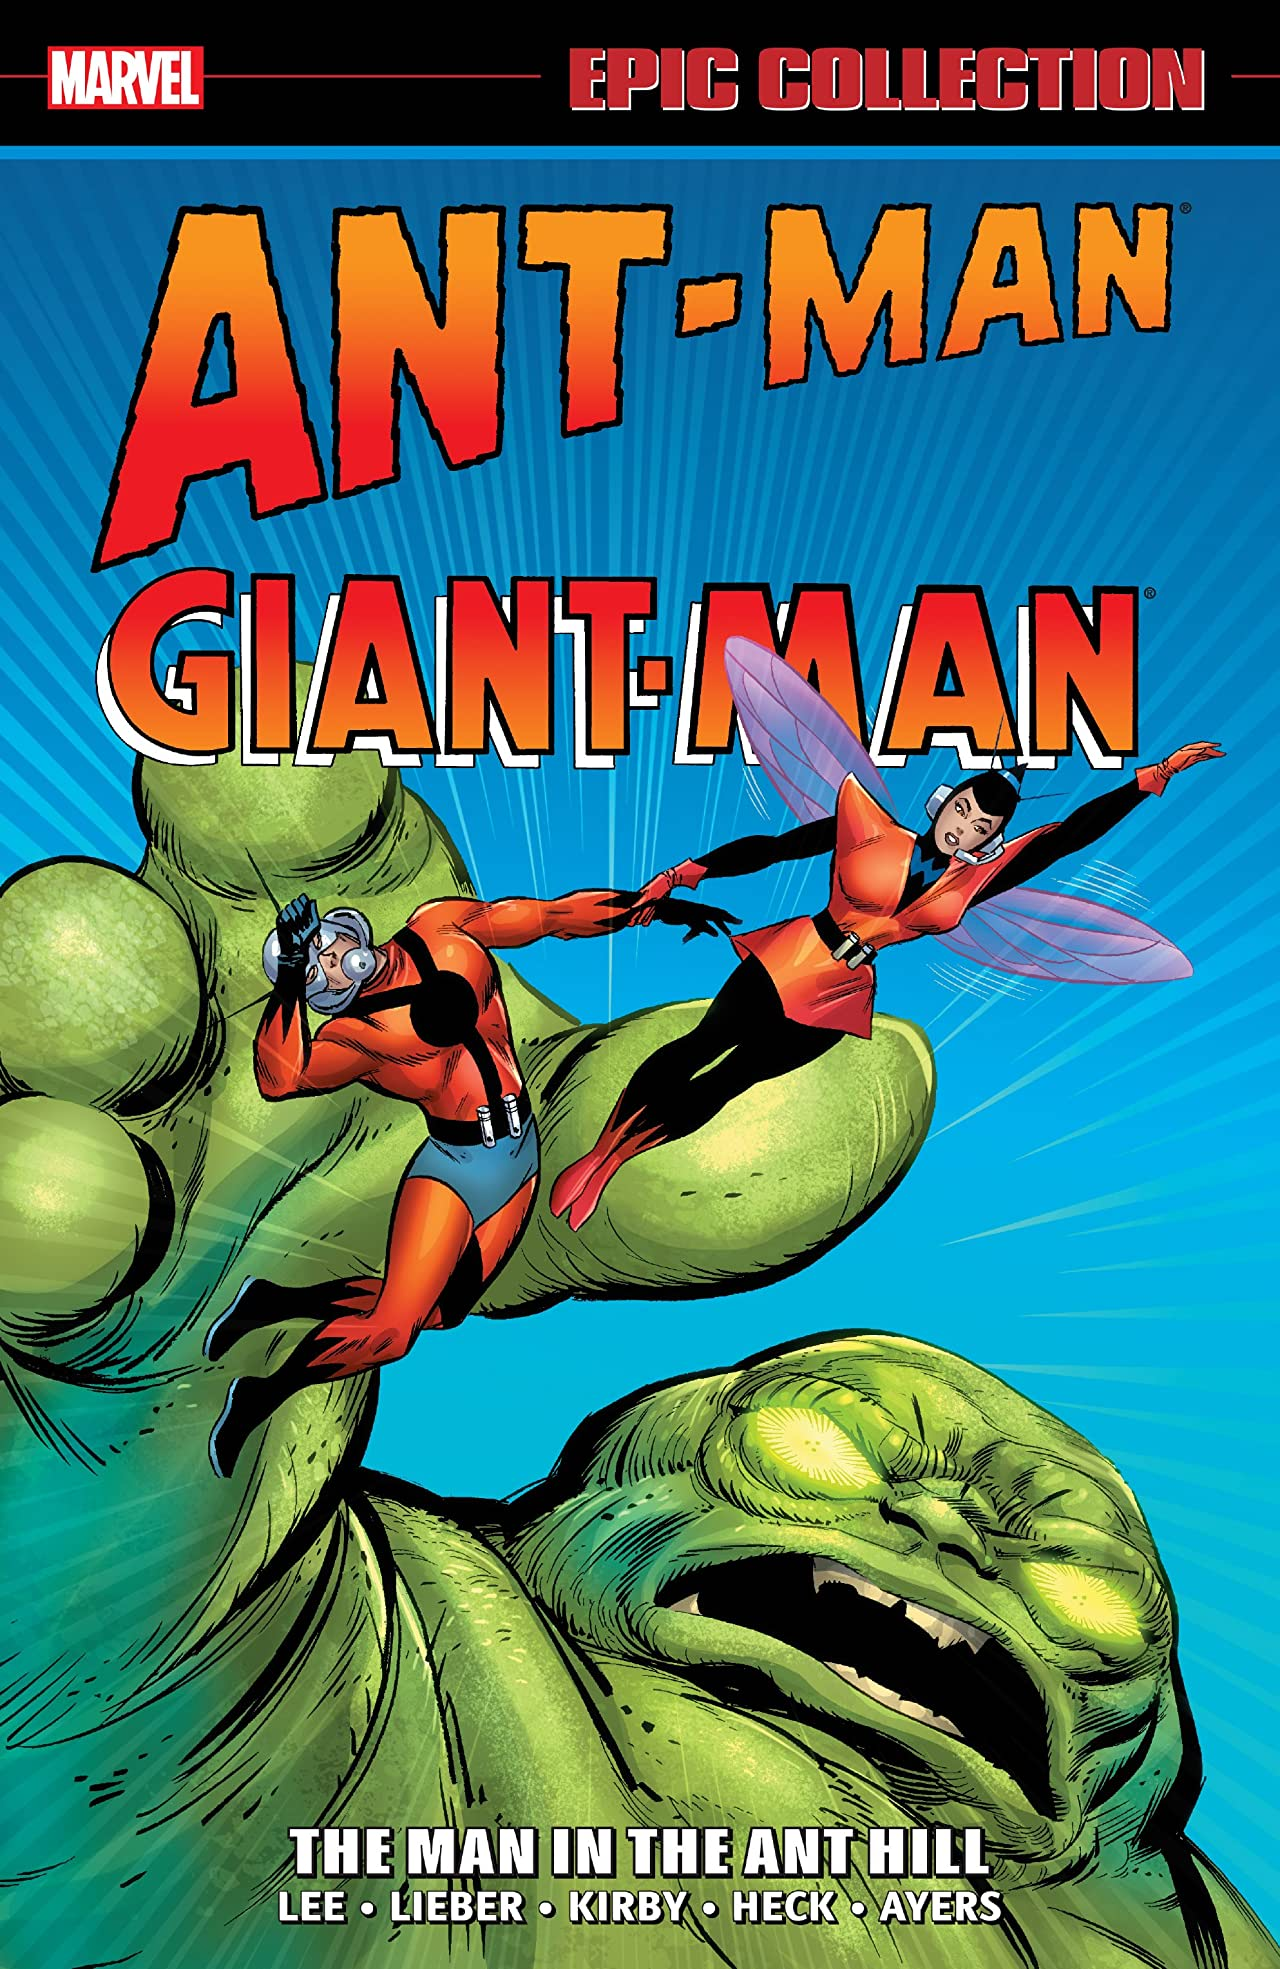 Ant-Man/Giant Man Epic Collection: The Man in the Ant-Hill